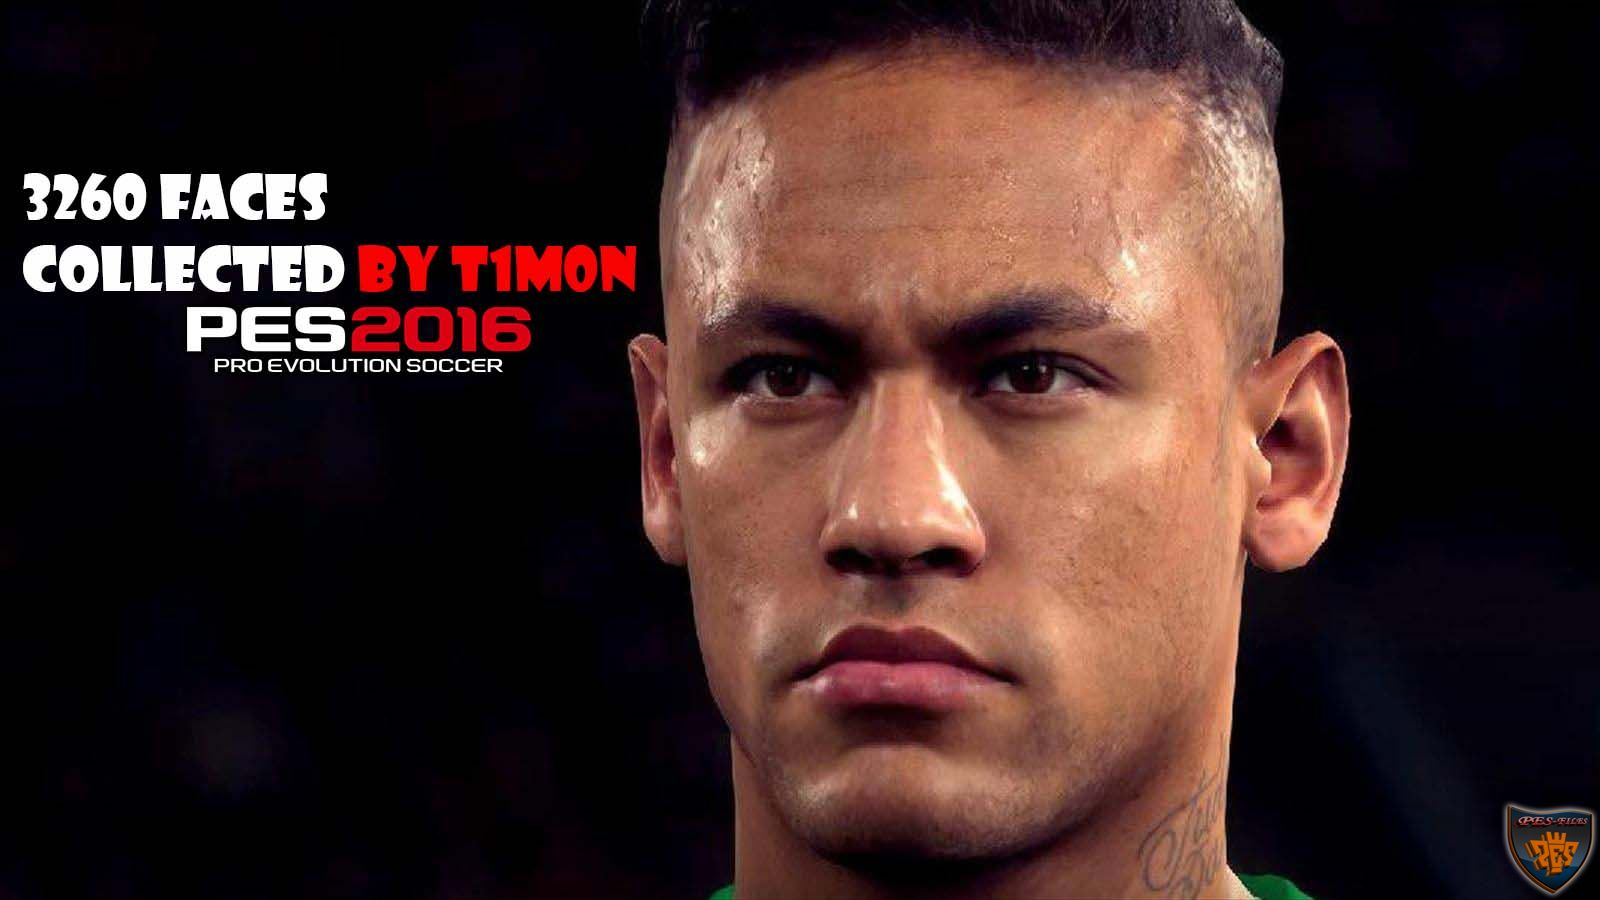 PES 2016 - 3260 Faces Collected by T1m0n